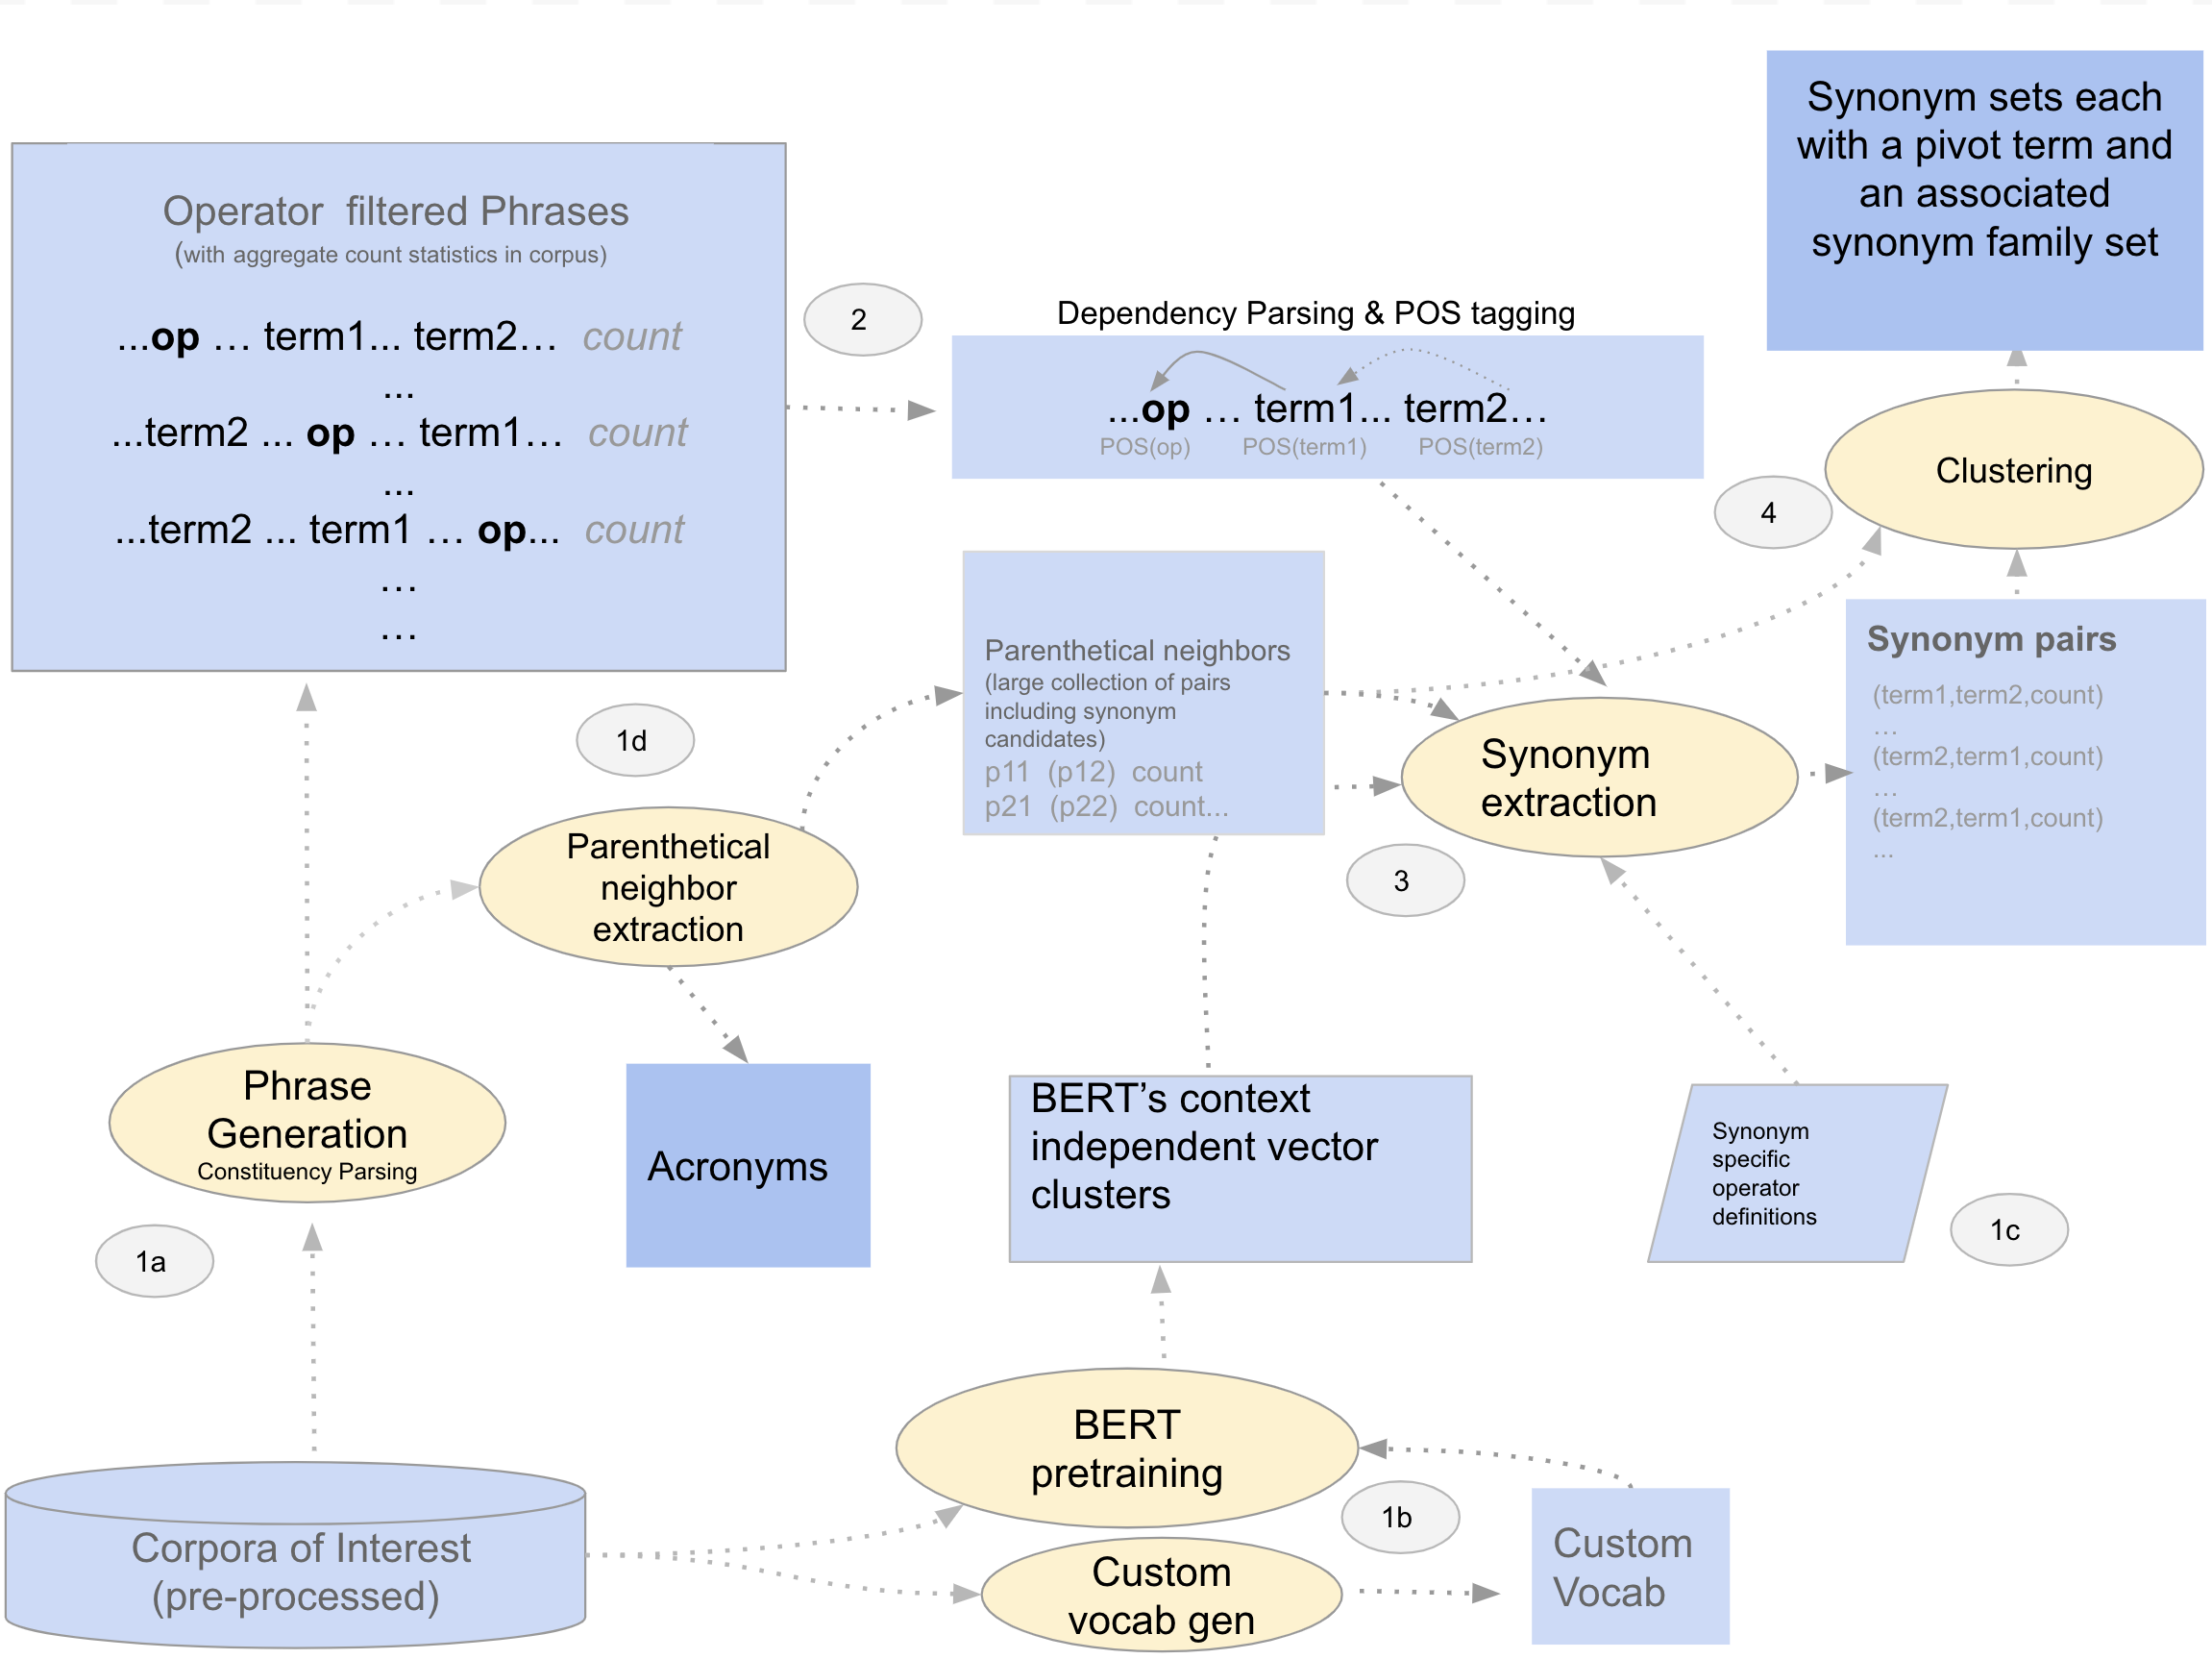 Unsupervised Synonym Harvesting A Hybrid Approach Combining Symbolic By Ajit Rajasekharan Dec 2020 Towards Data Science 50 examples of synonyms with sentences unsupervised synonym harvesting a